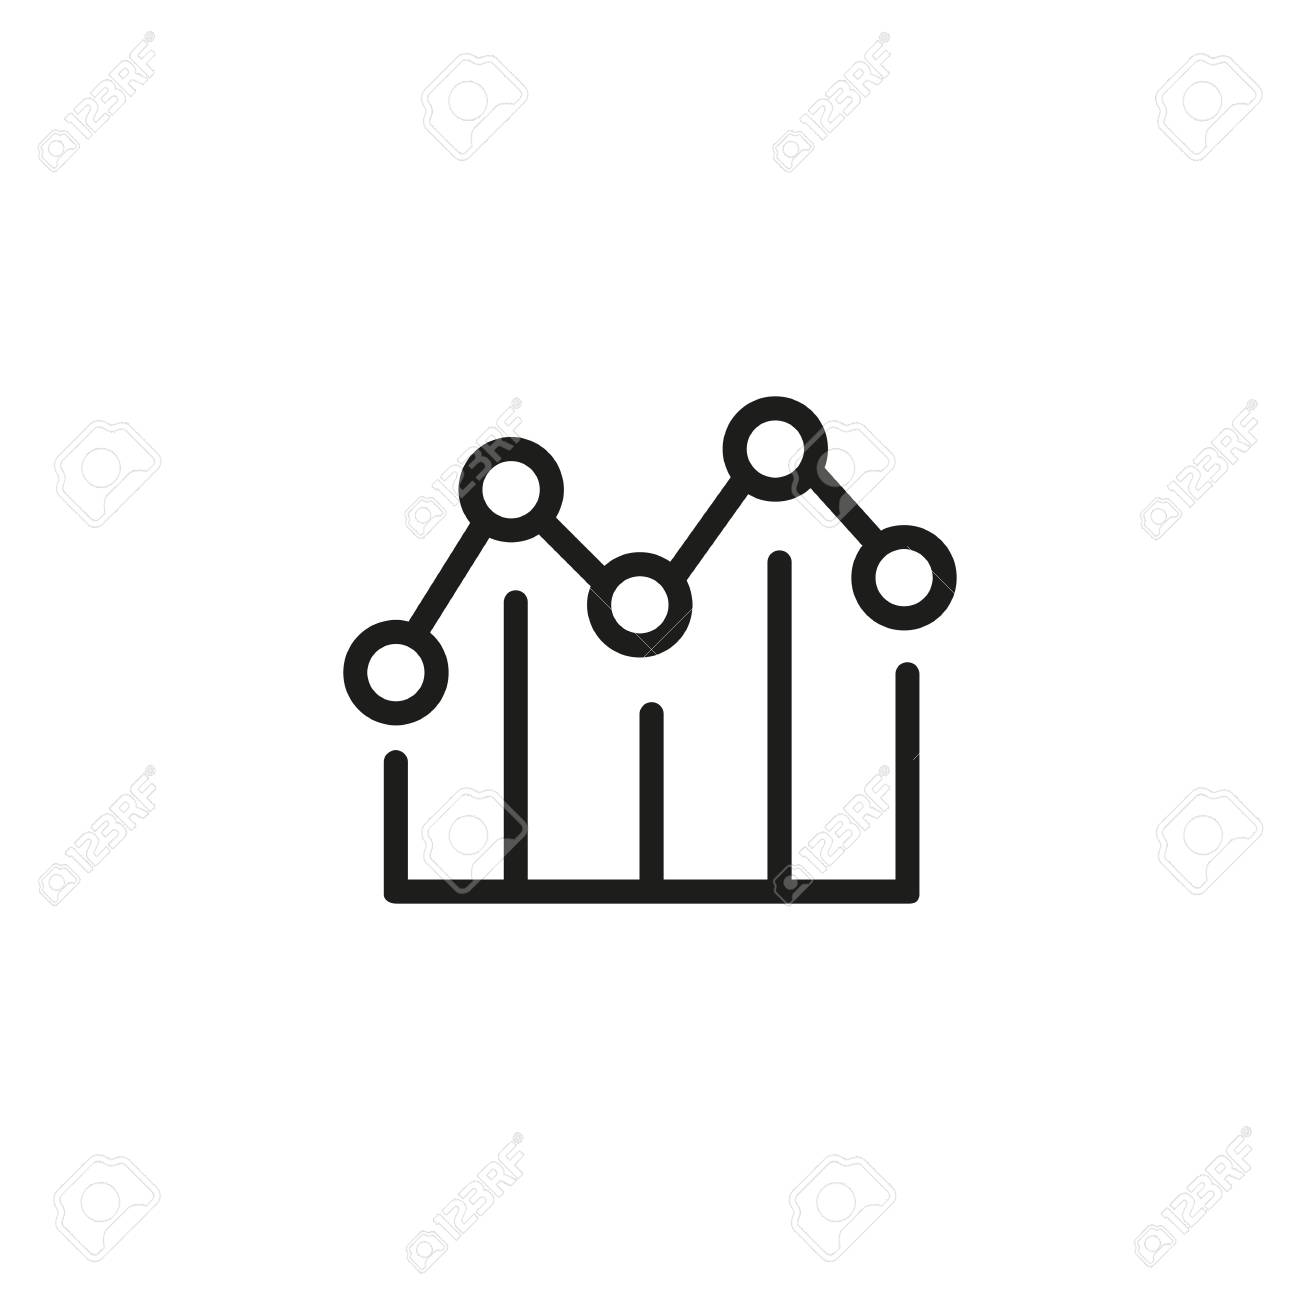 line icon of line graph. scatter plot chart, diagram, correlation